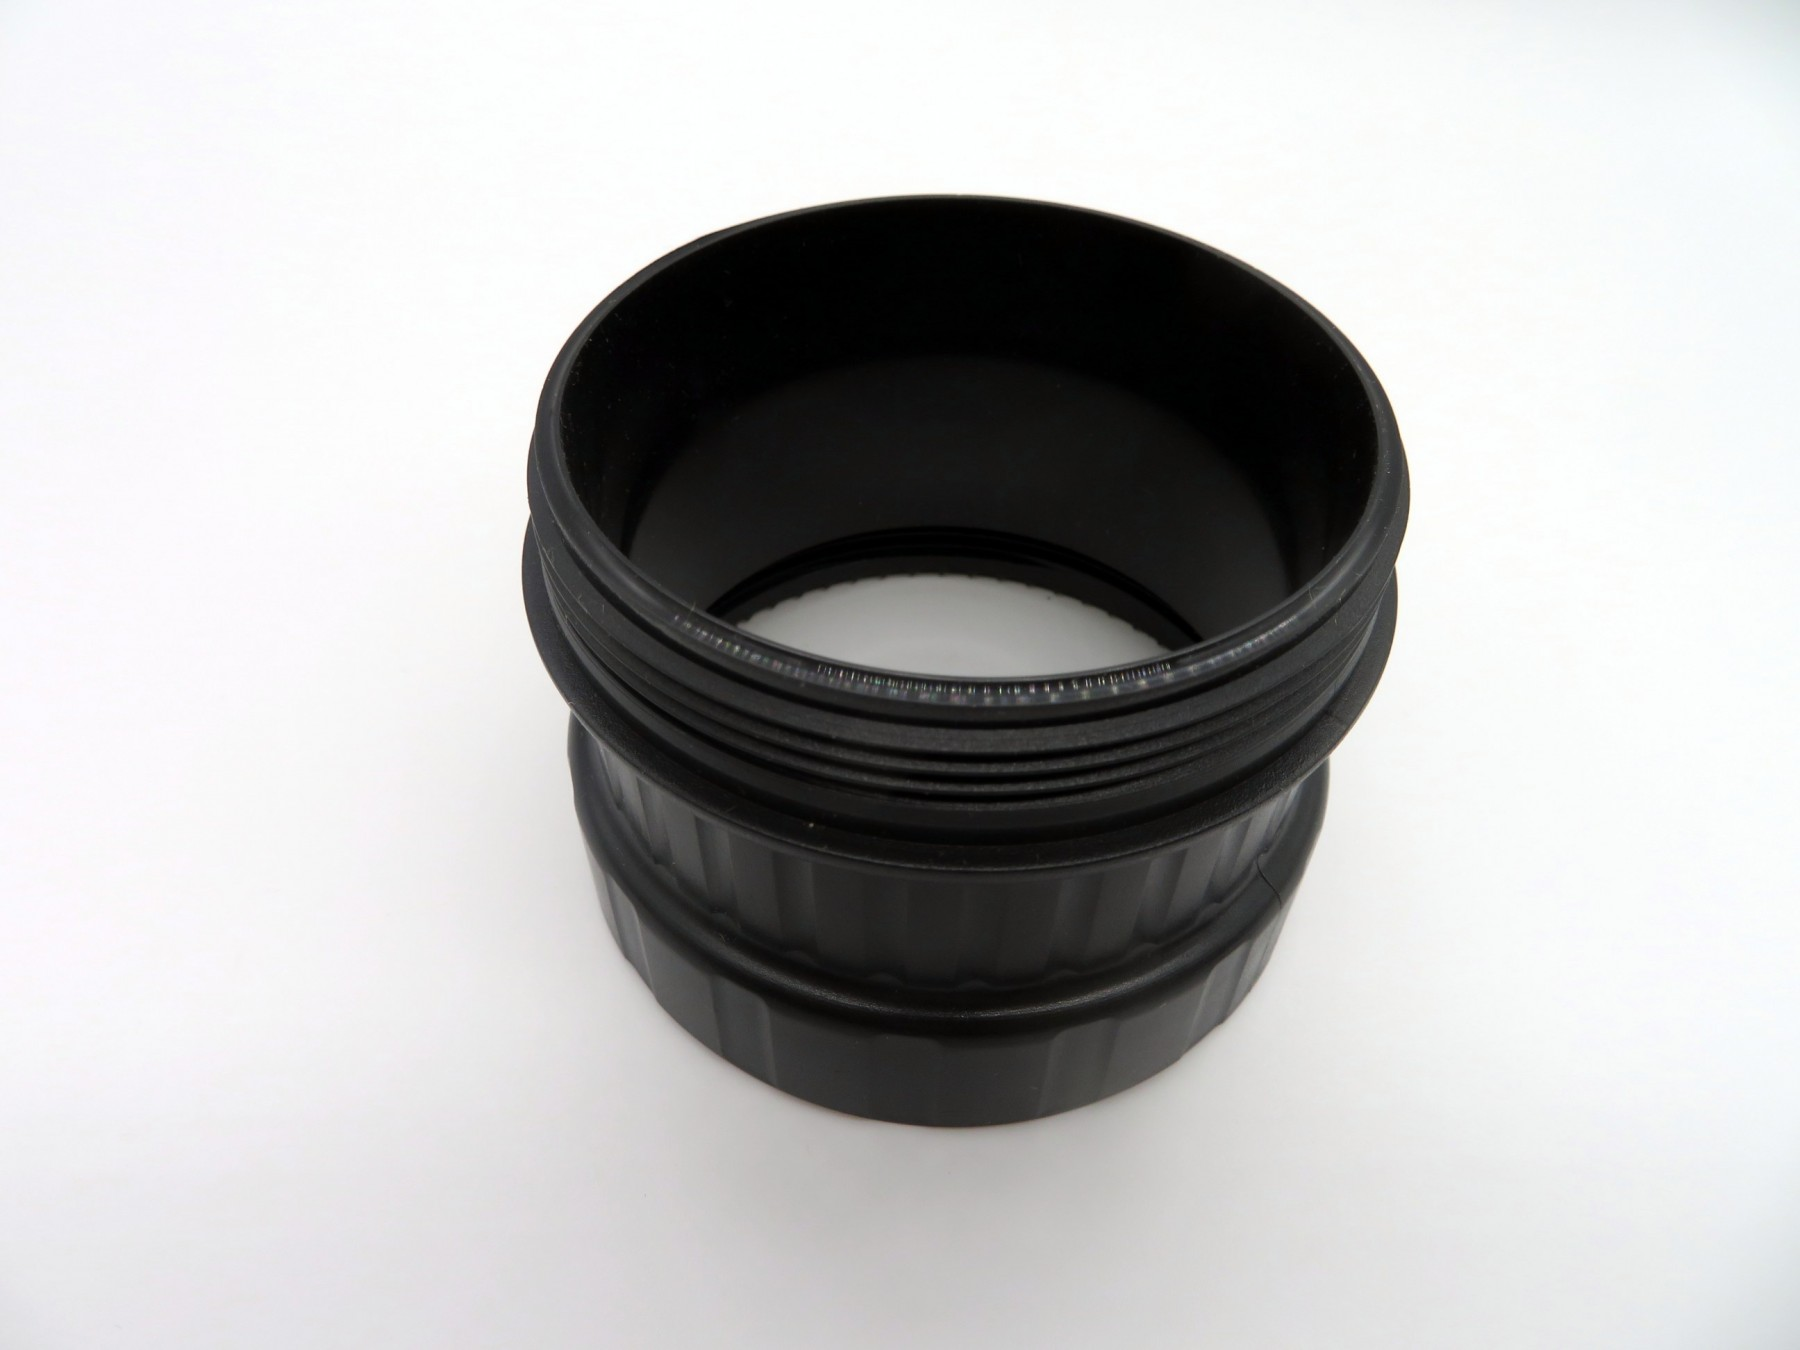 Genuine DiCAPac spare part spare-part-dicapac-wp-610-wp-h10-extension-for-lens-tube-32